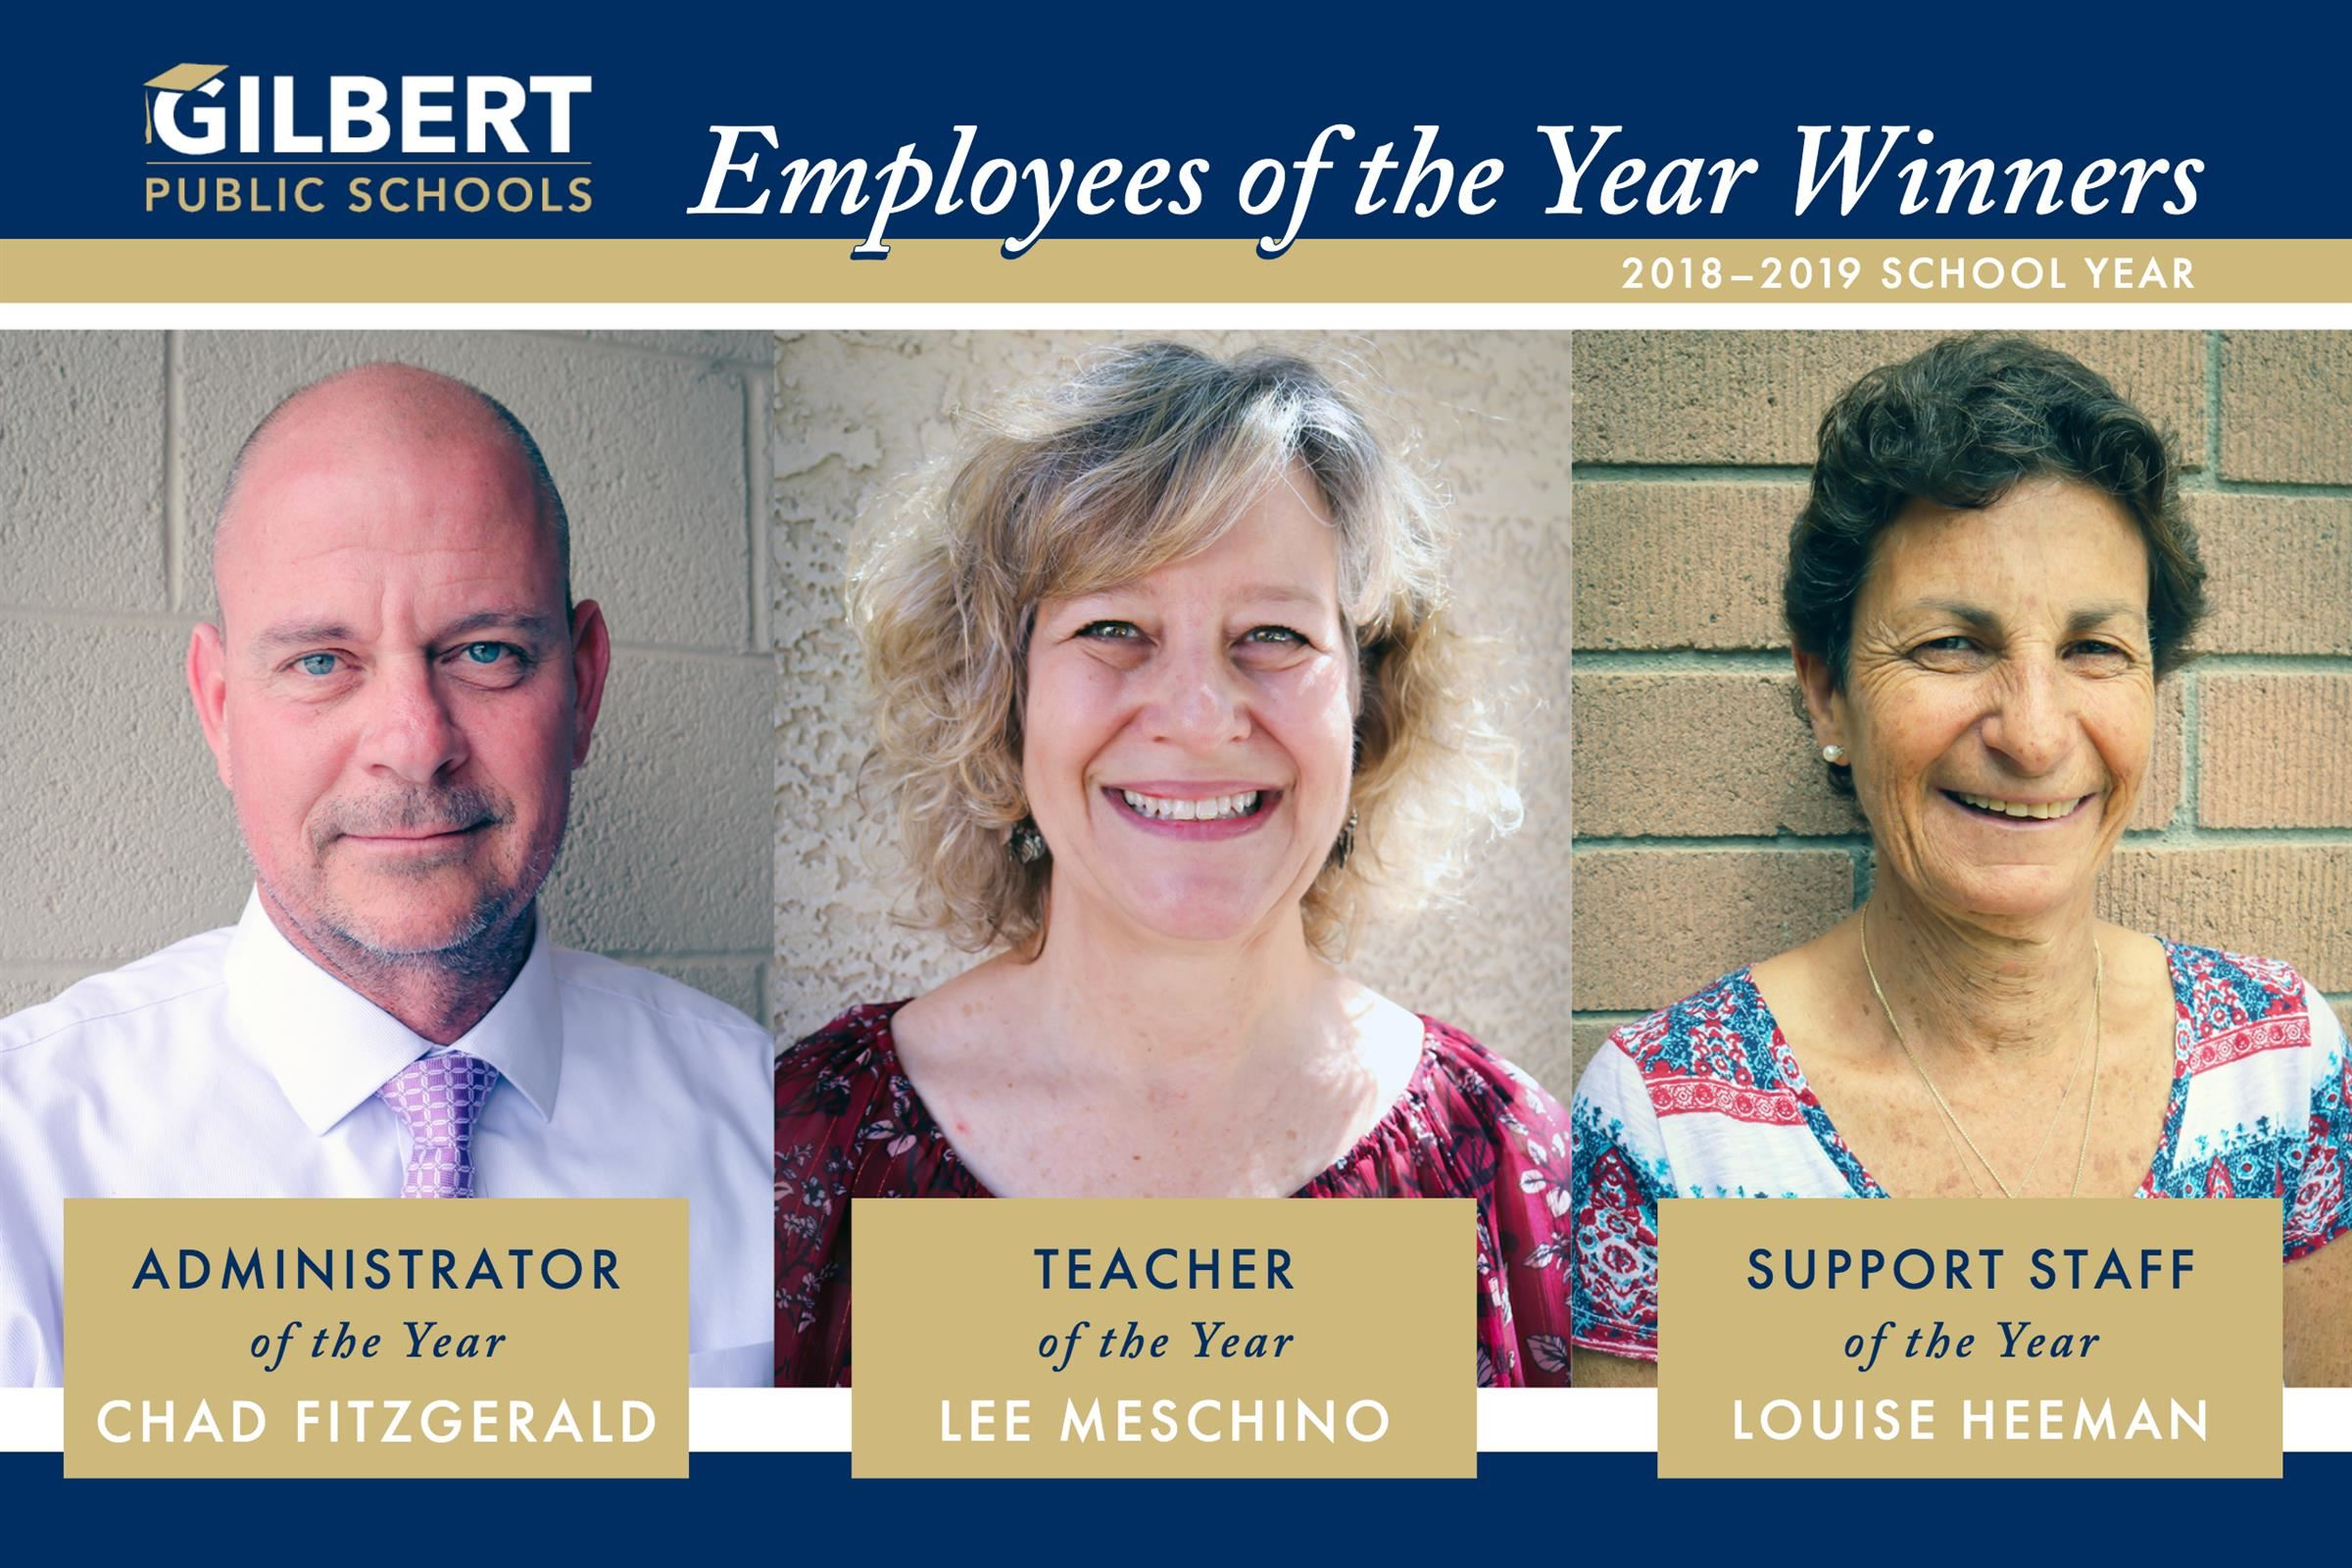 Gilbert Public Schools 2018–2019 Employees of the Year Winners!